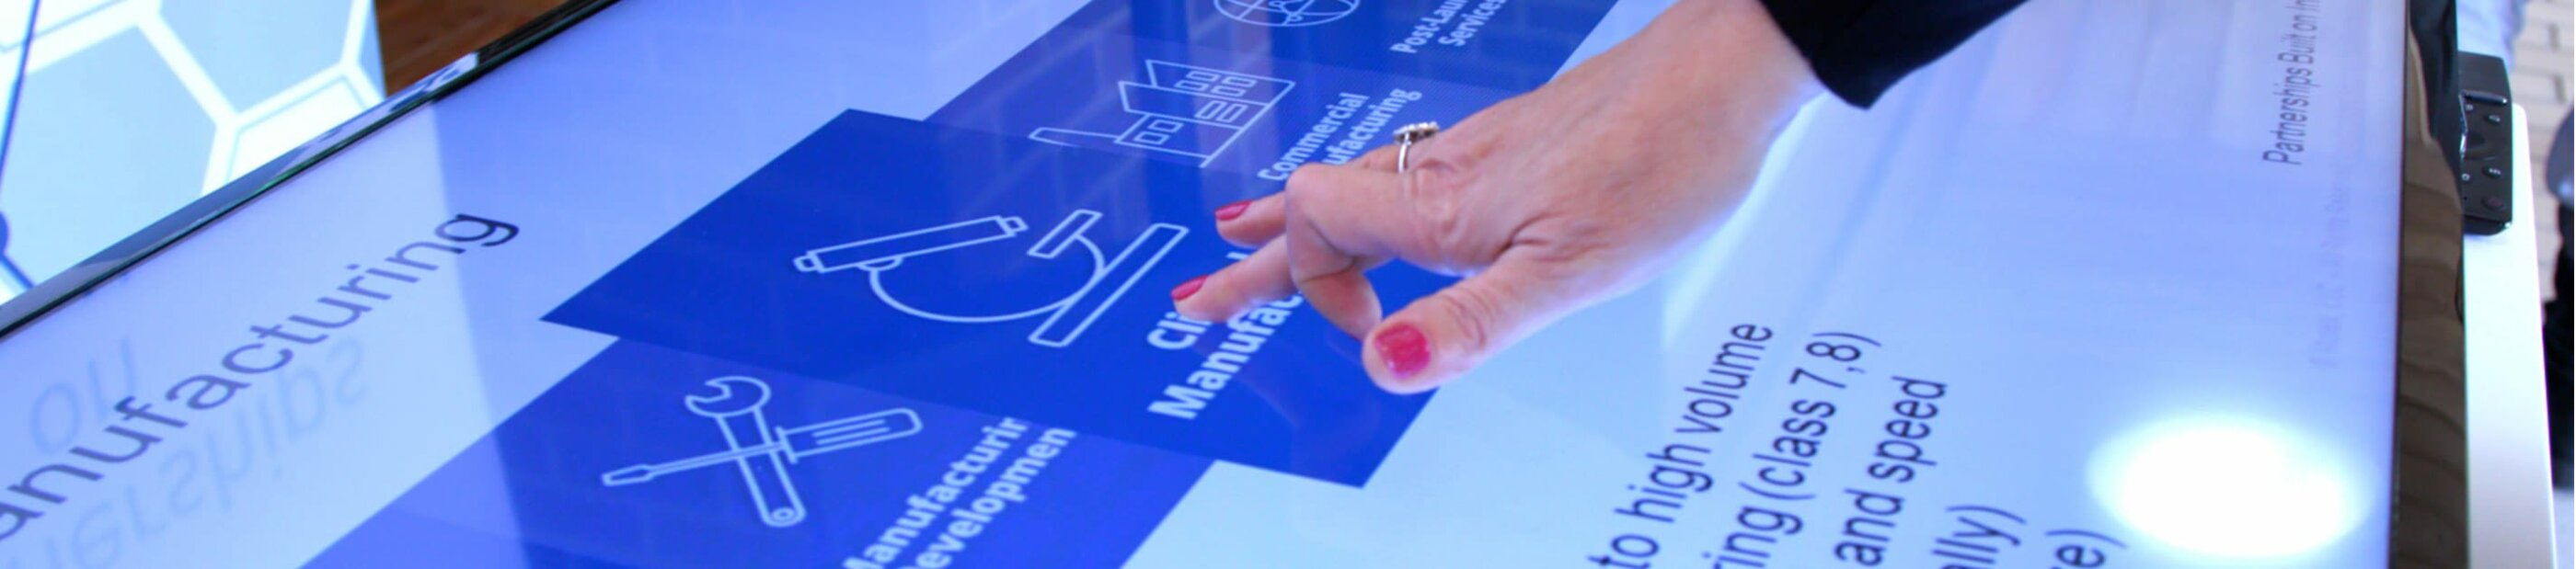 woman's hand interacting with data on a touch screen